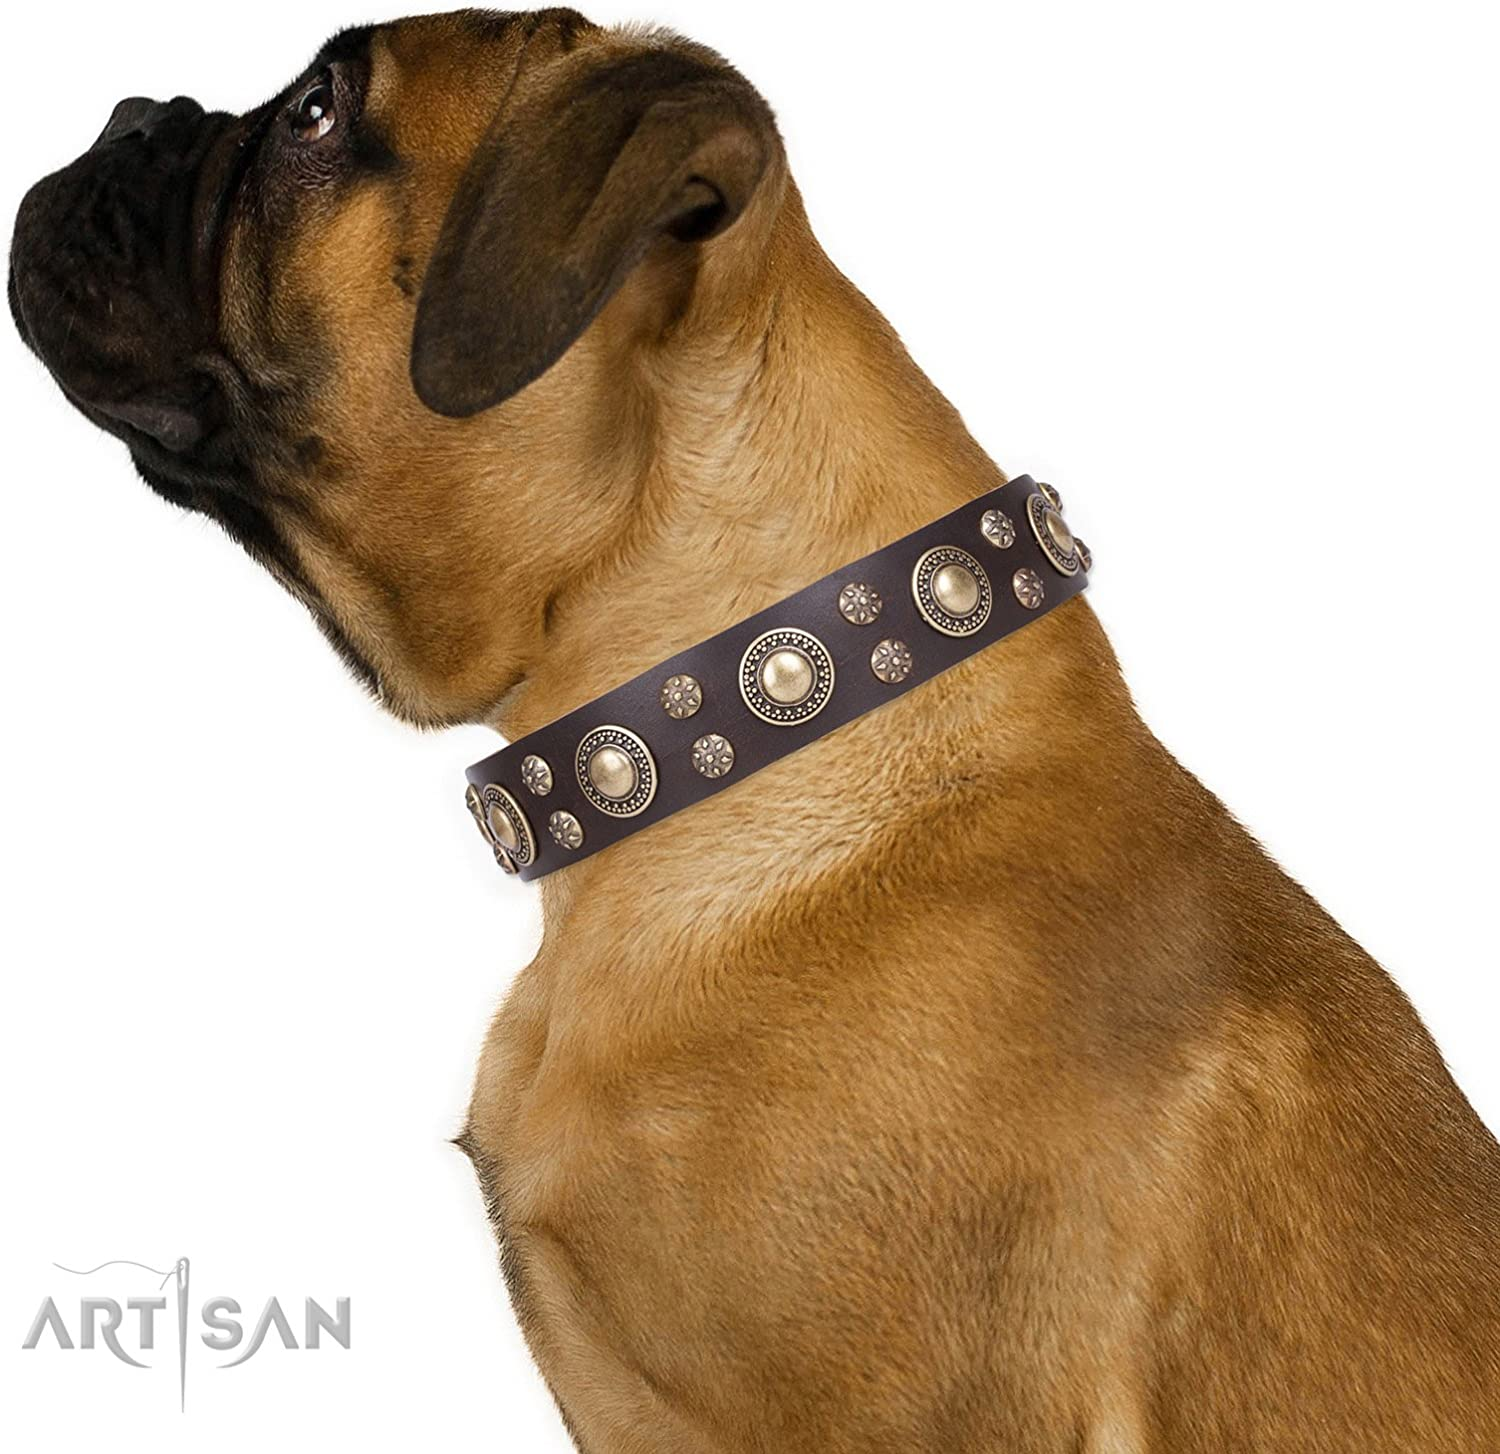 FDT Artisan 22 inch Brown Leather Dog Collar with Brass Plated Decorations   Sophisticated Beauty